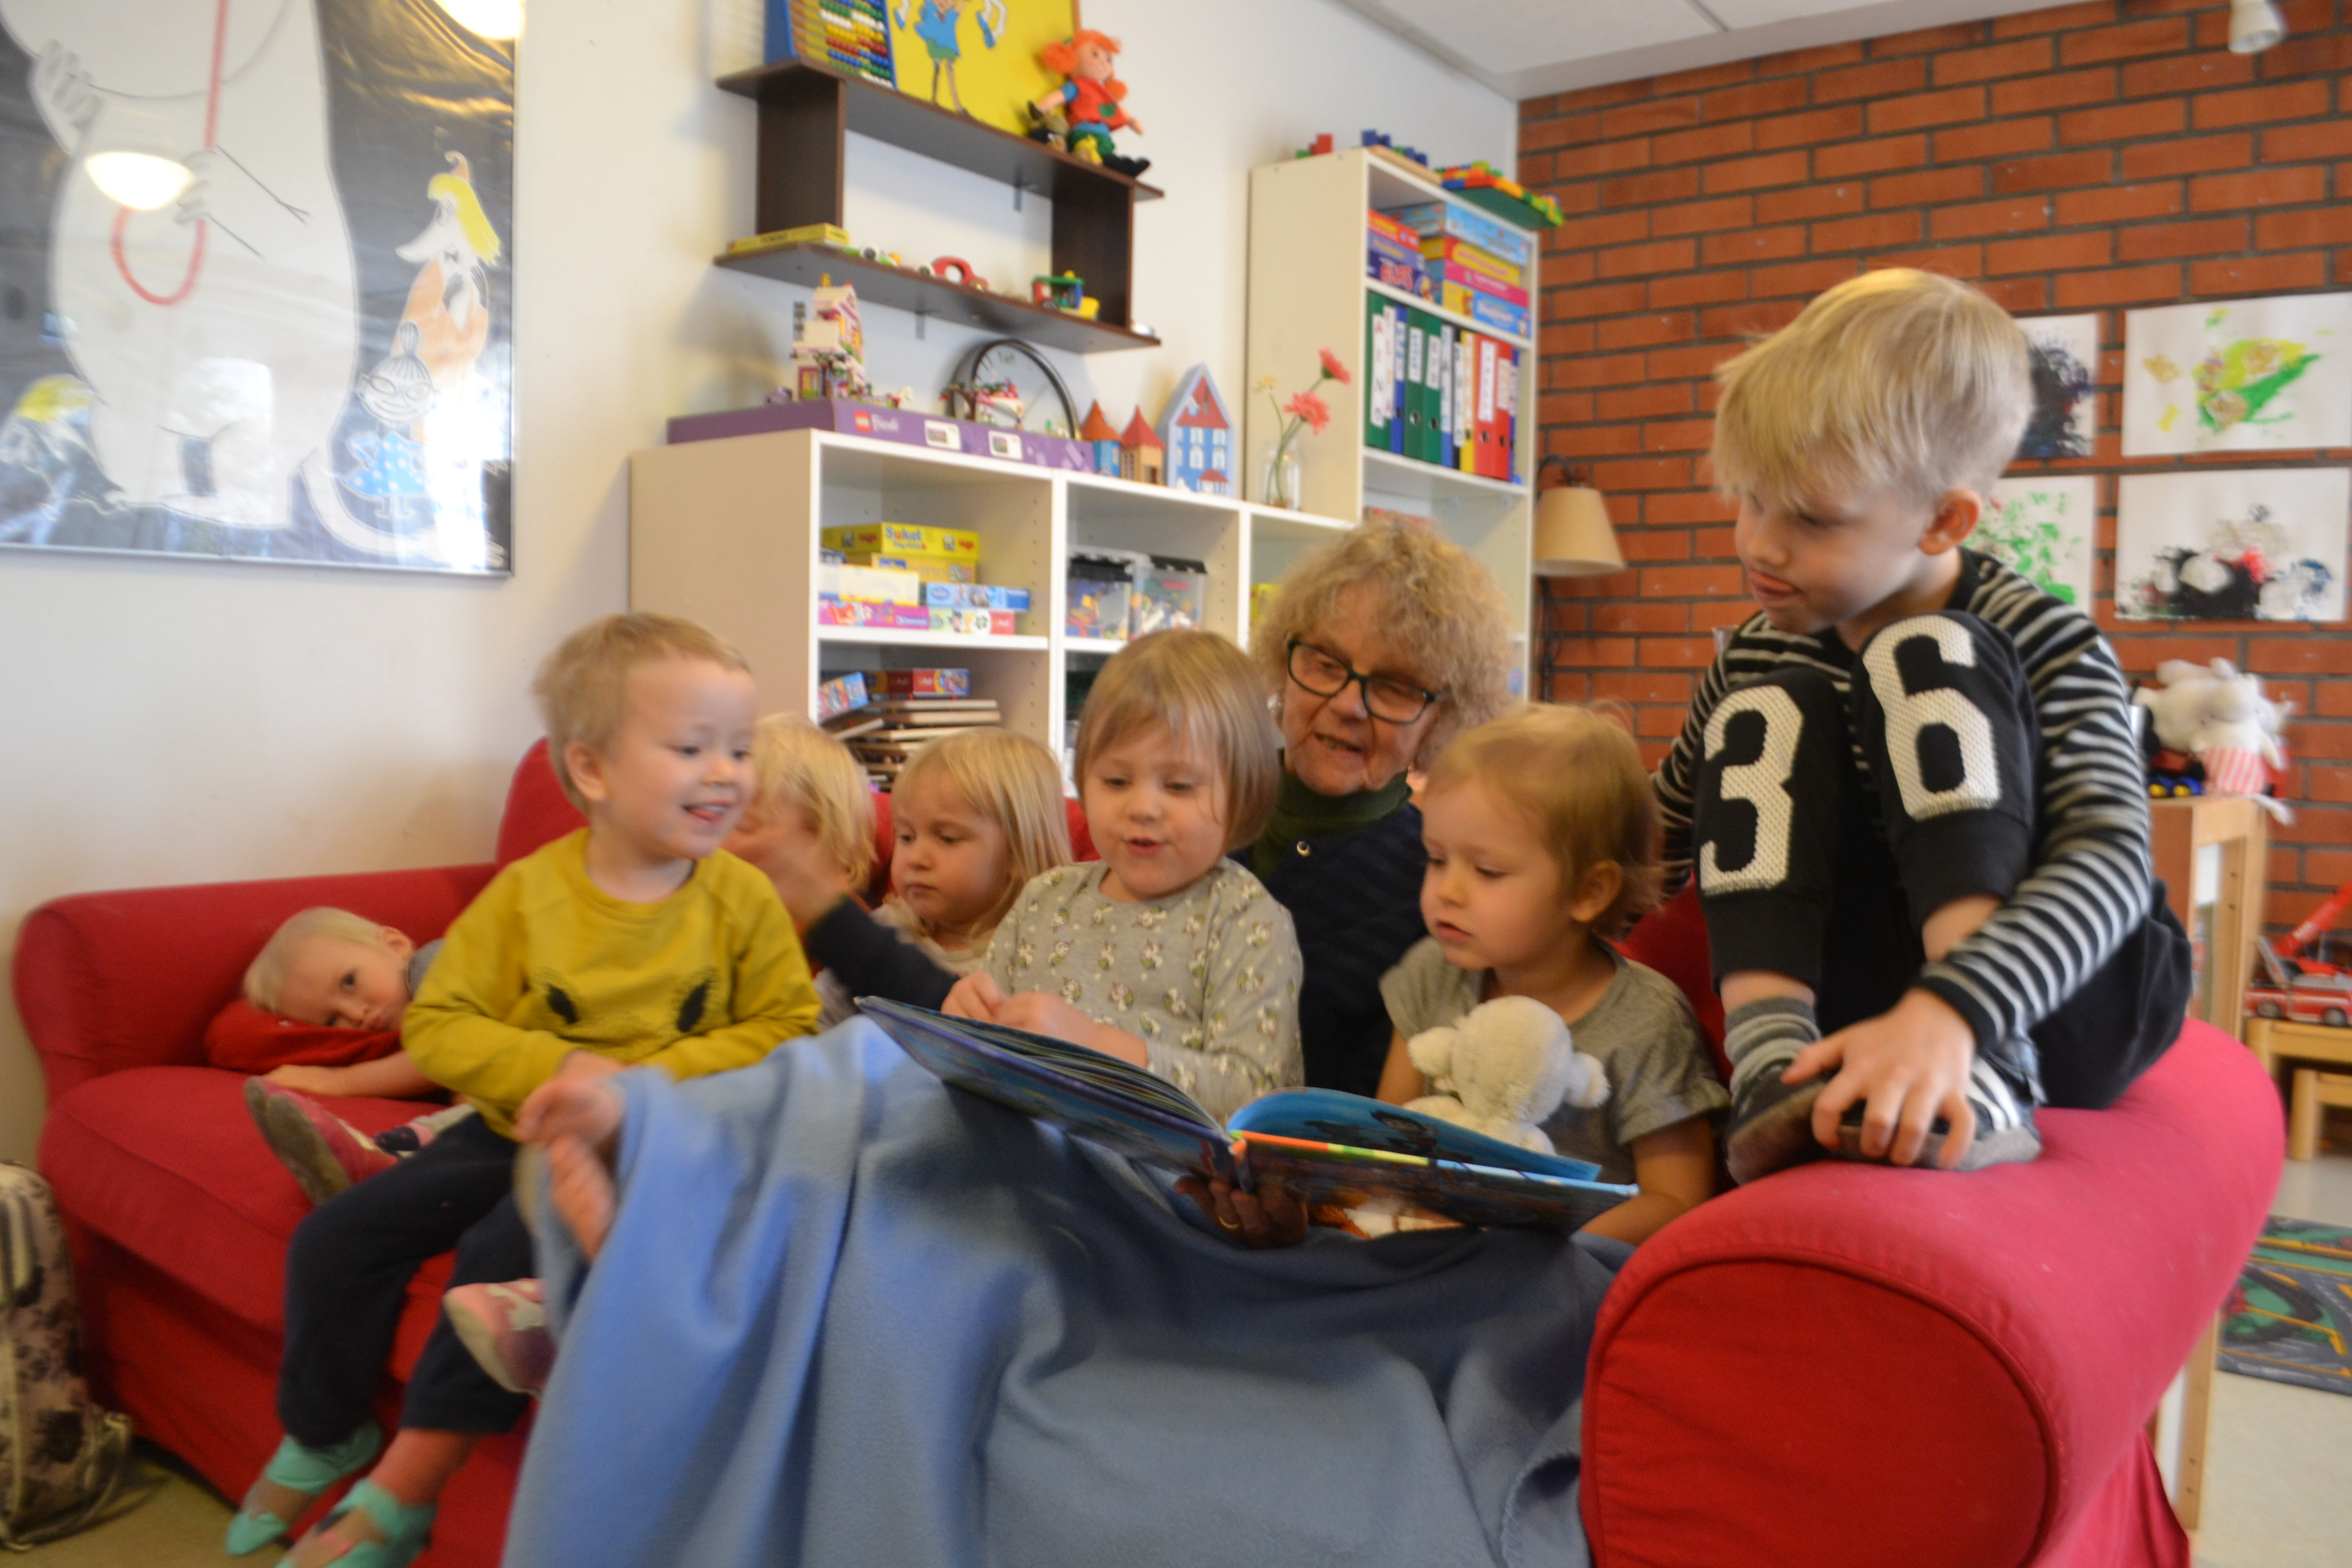 A group of children sit on the couch with Marjatta as she reads them a book